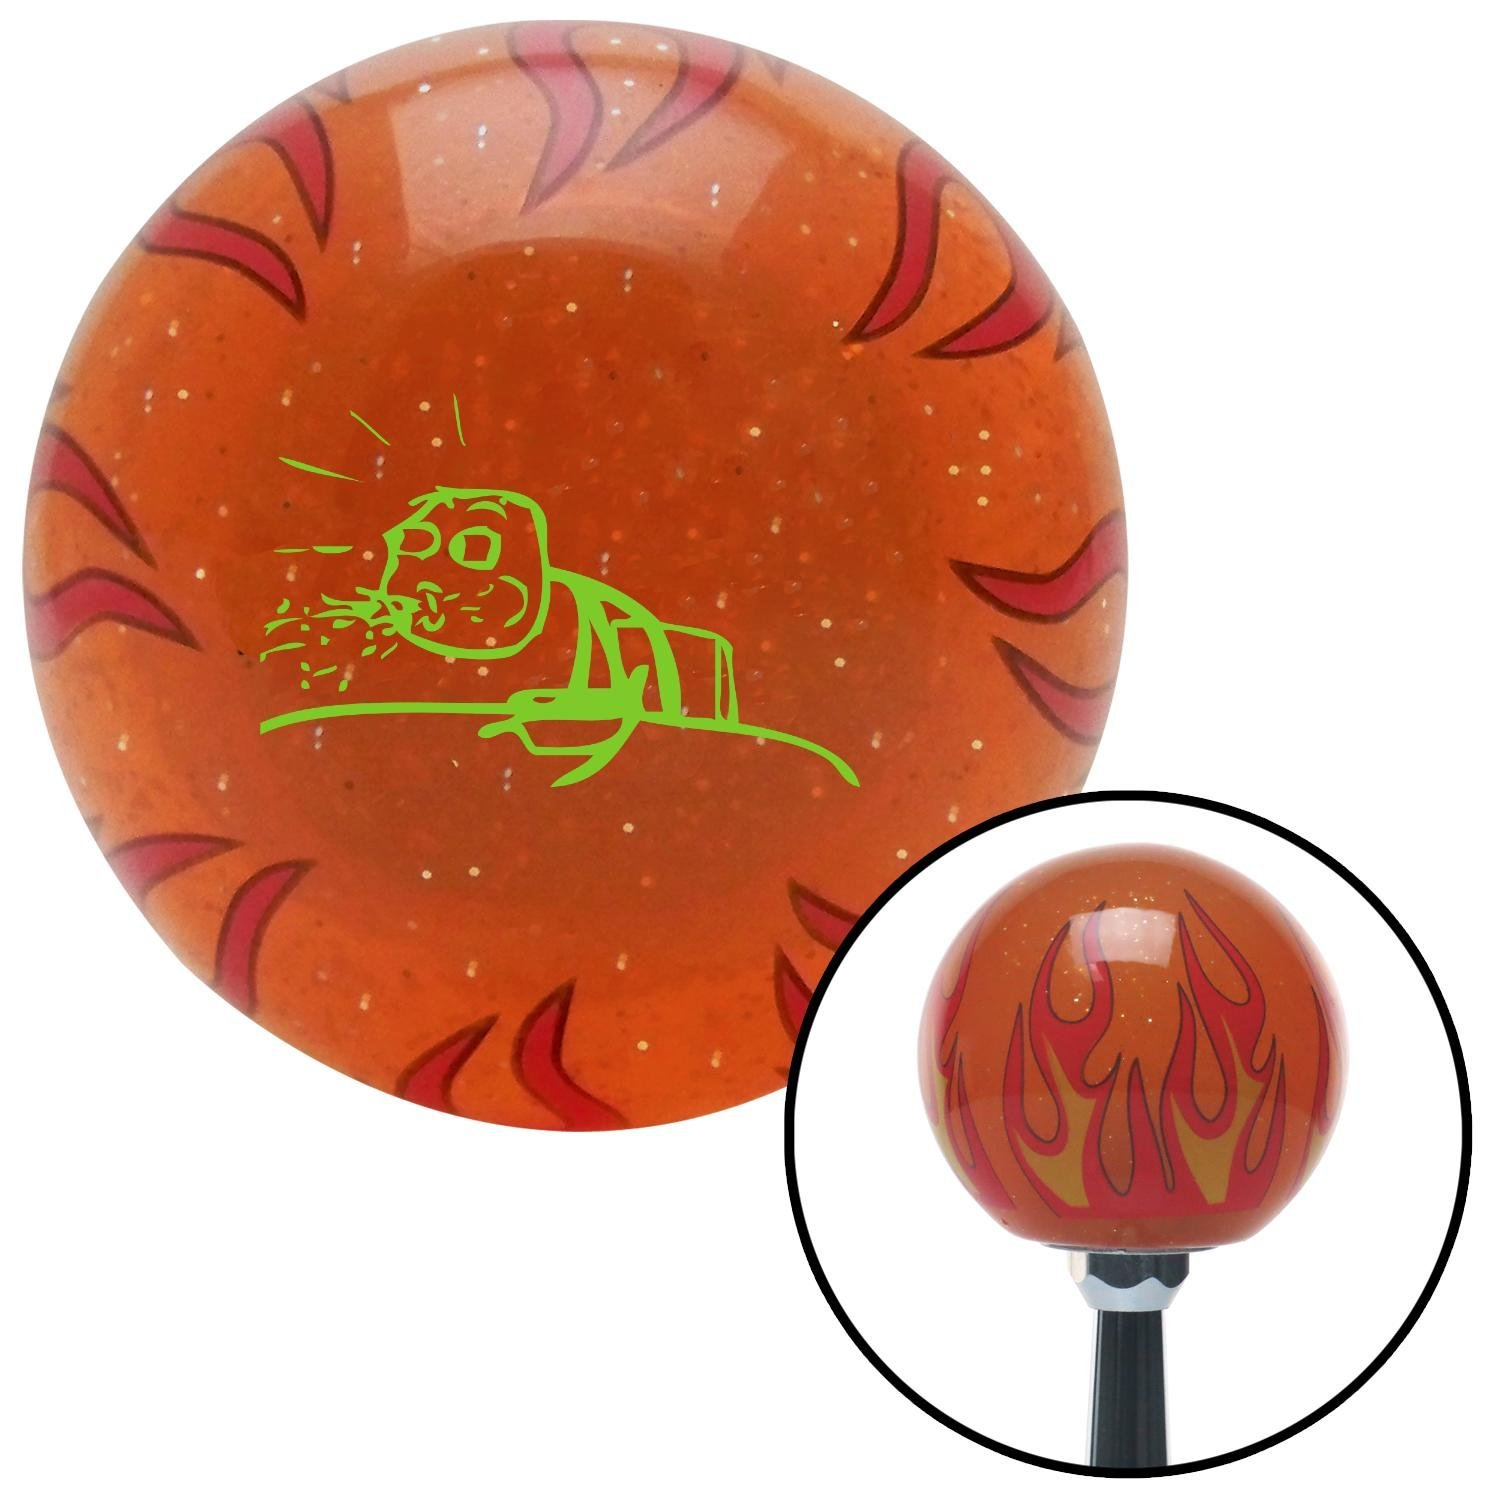 Green Guy Cereal Spitting American Shifter 254078 Orange Flame Metal Flake Shift Knob with M16 x 1.5 Insert